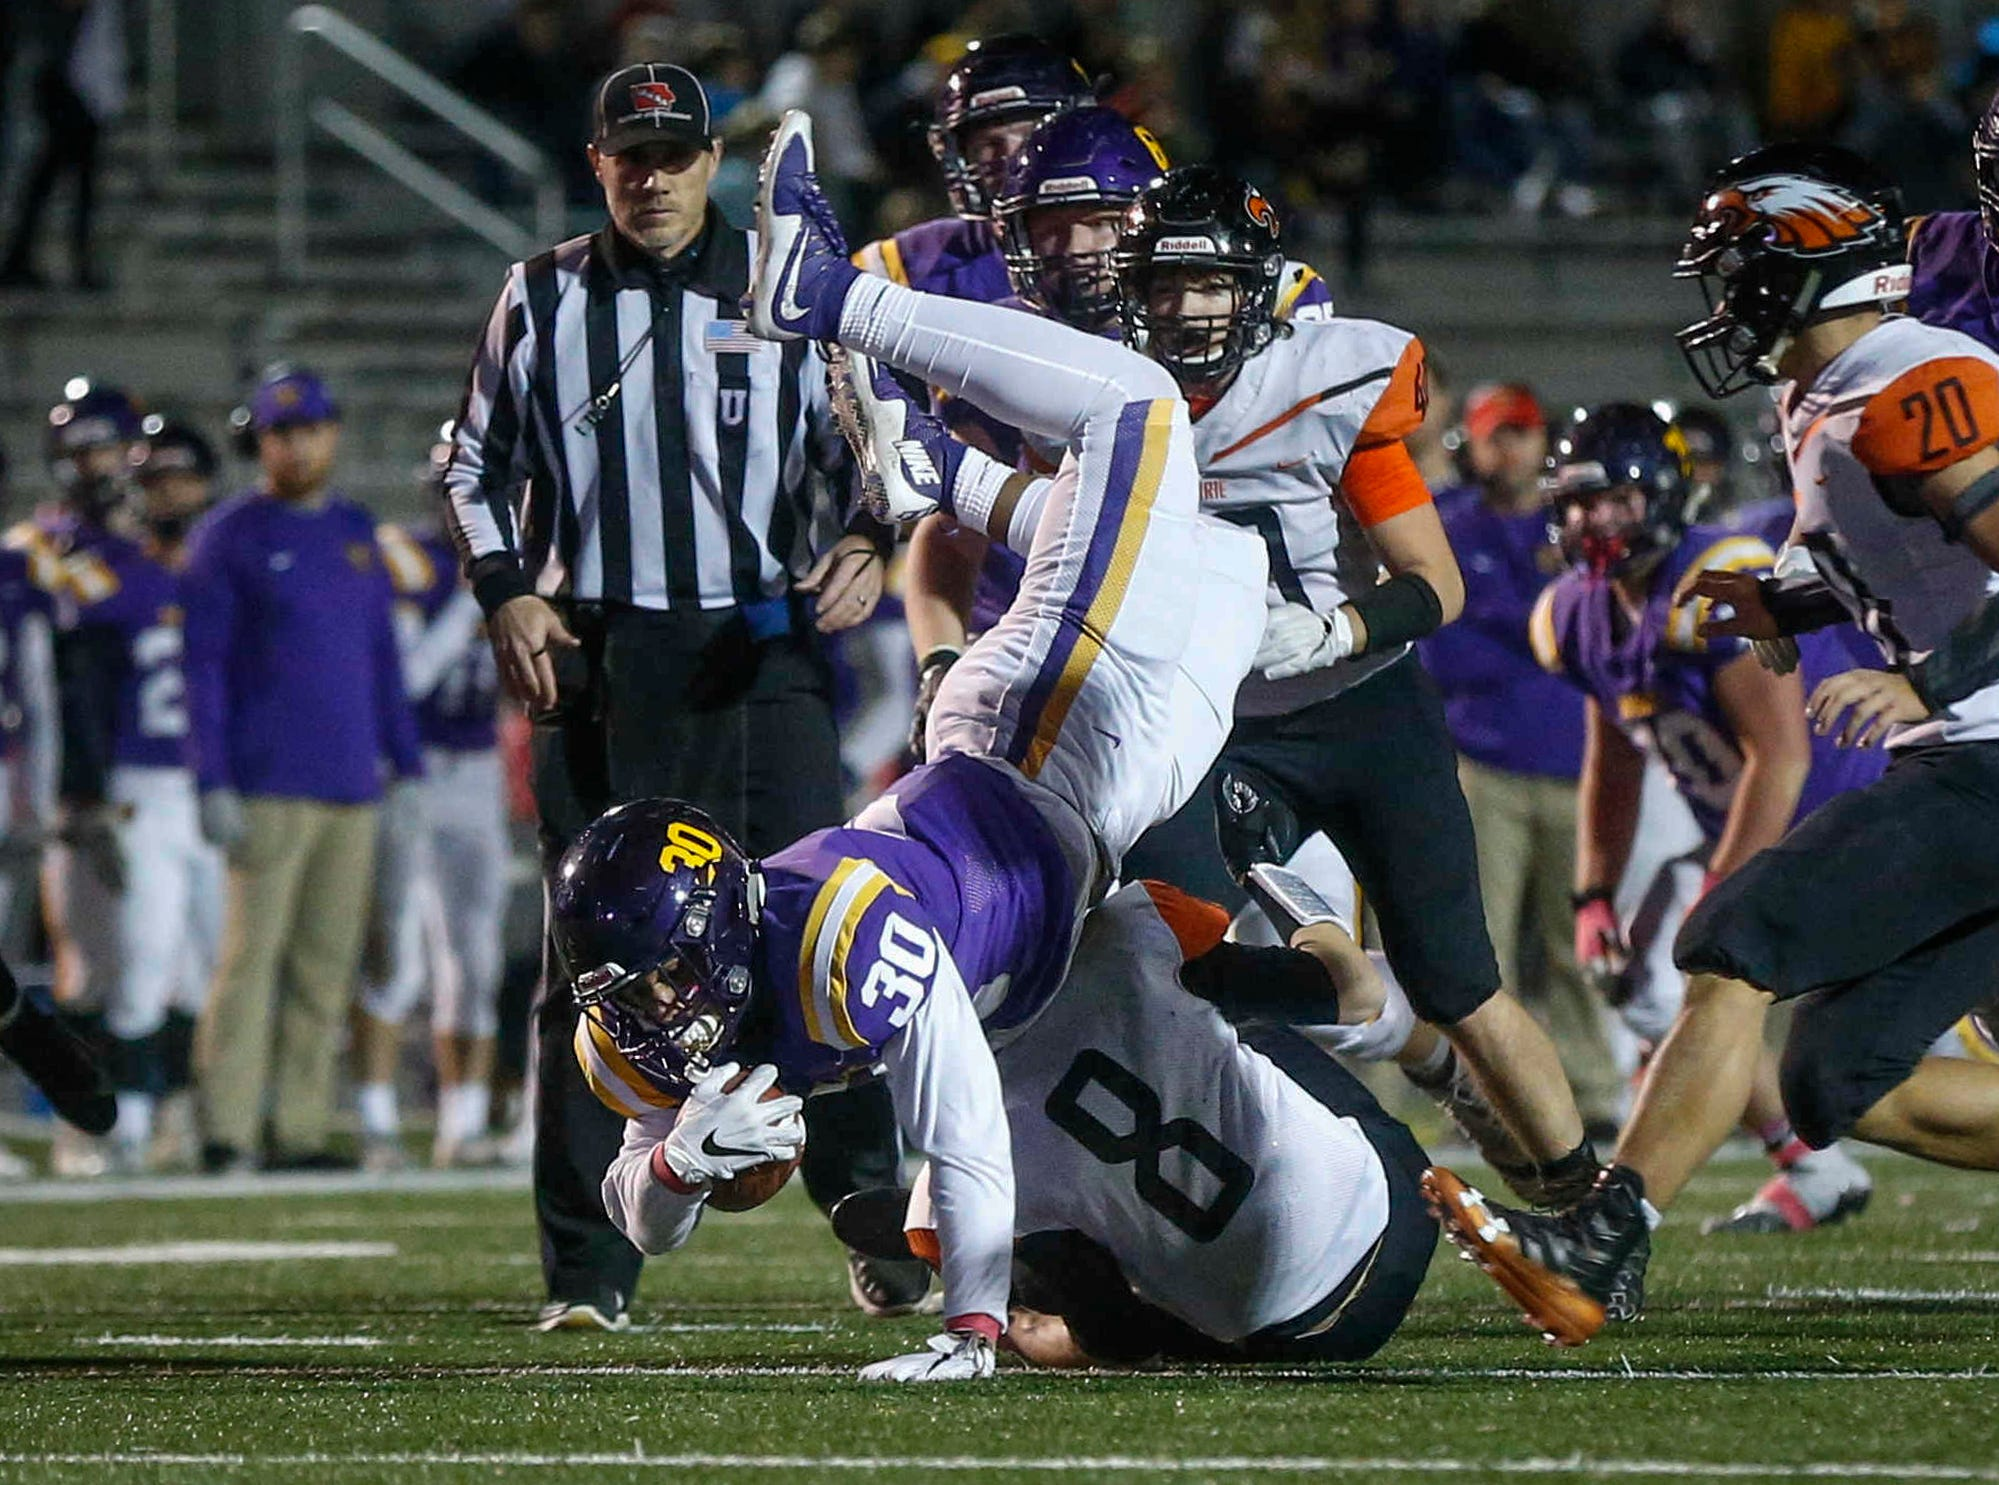 Johnston running back Nuutele Davis reaches for extra yards after being tackled by Cedar Rapids Prairie's Hunter Williams during the first round of Iowa high school football playoffs on Friday, Oct. 26, 2018.